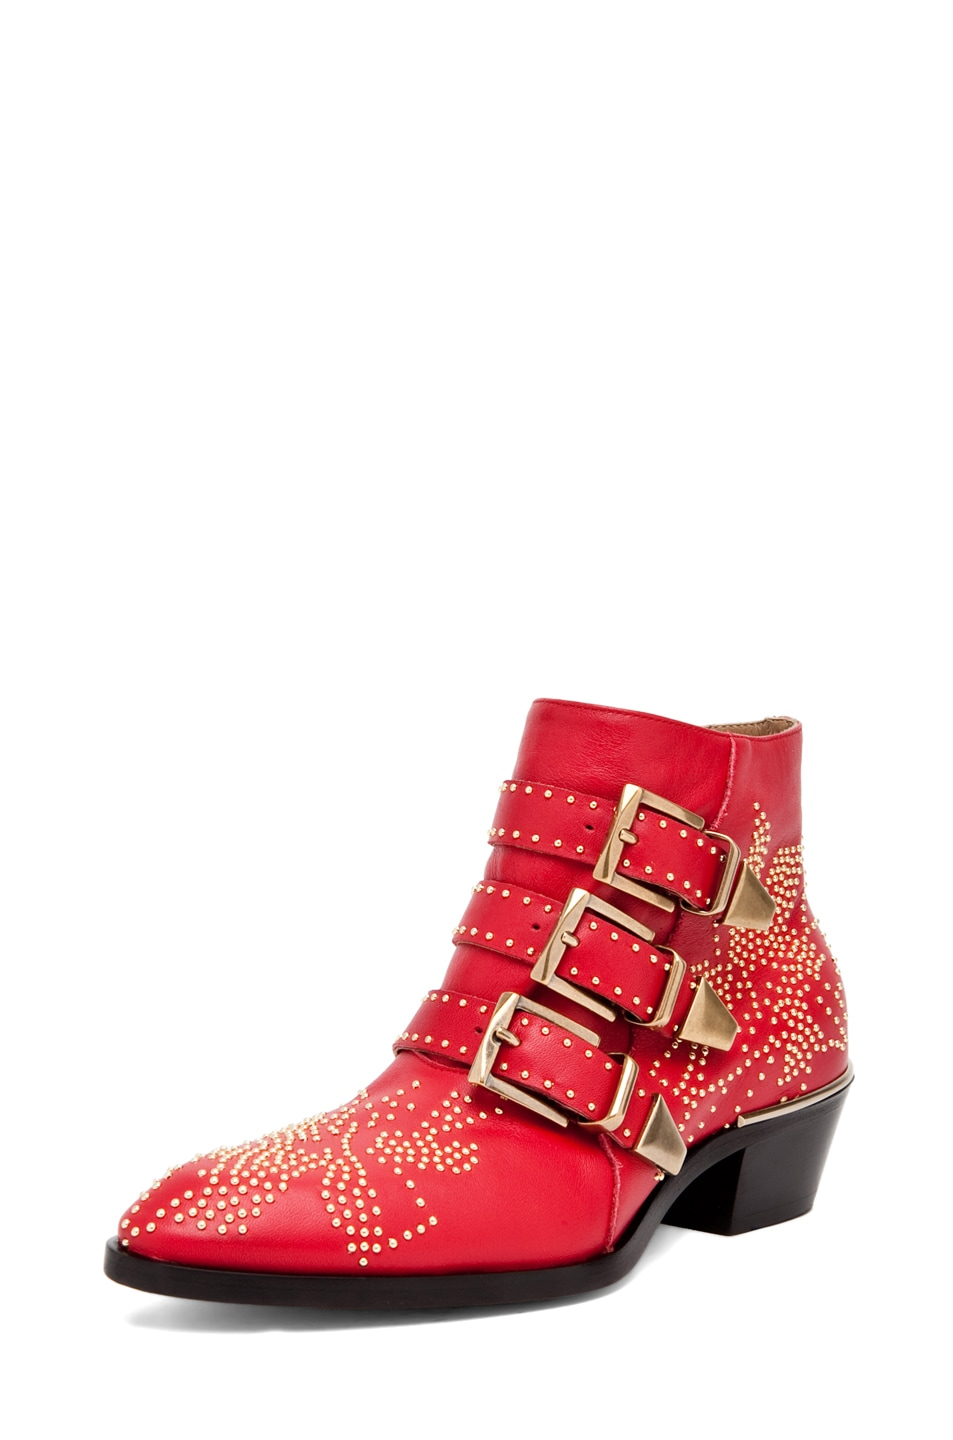 Image 2 of Chloe Susanna Leather Studded Booties in Red